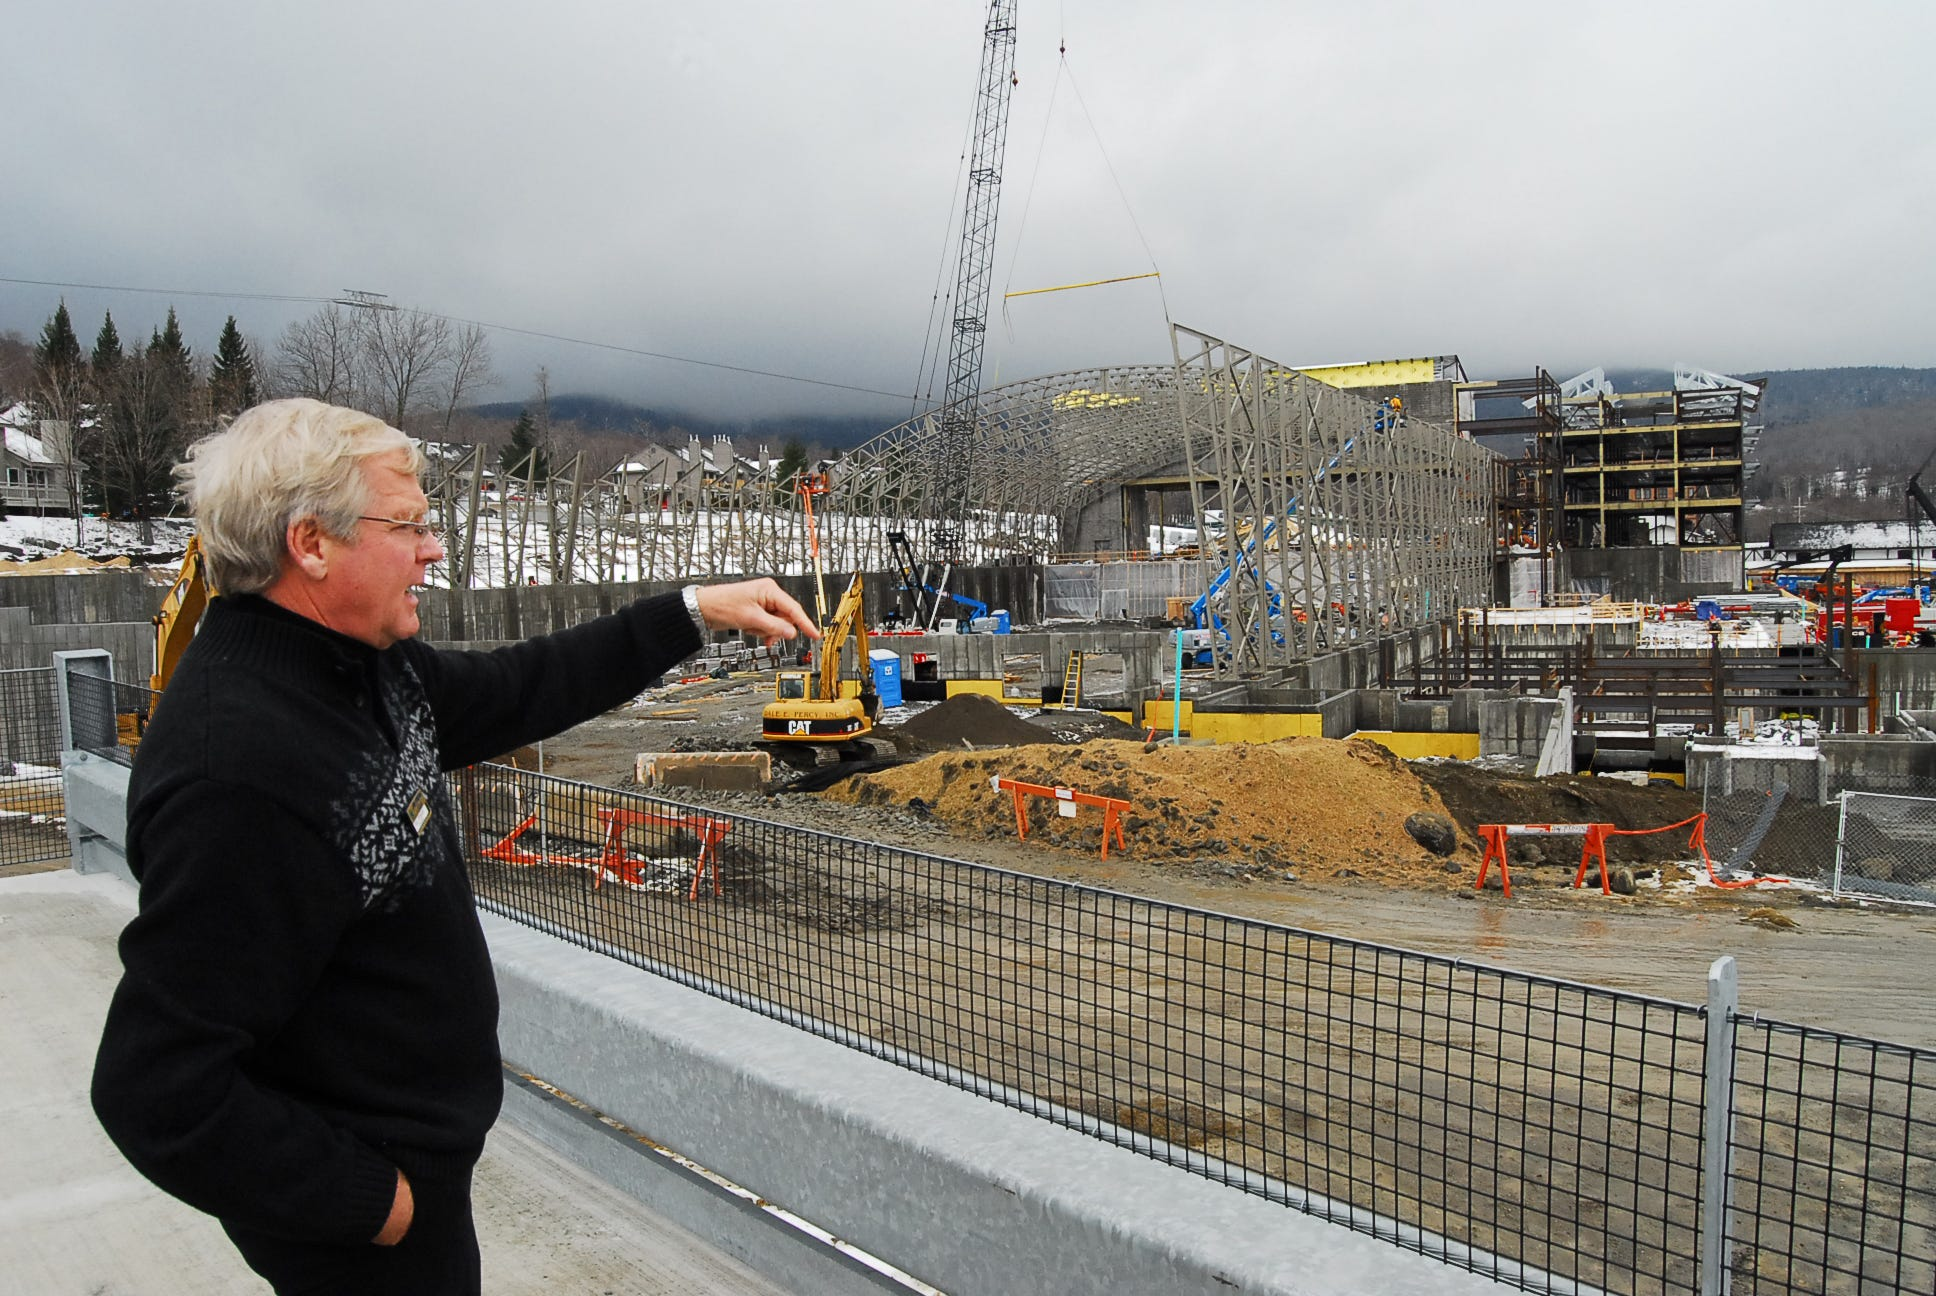 Jay Peak President and CEO Bill Stenger points out progress on the construction of the resort's new indoor water park at the main base area in 2010.